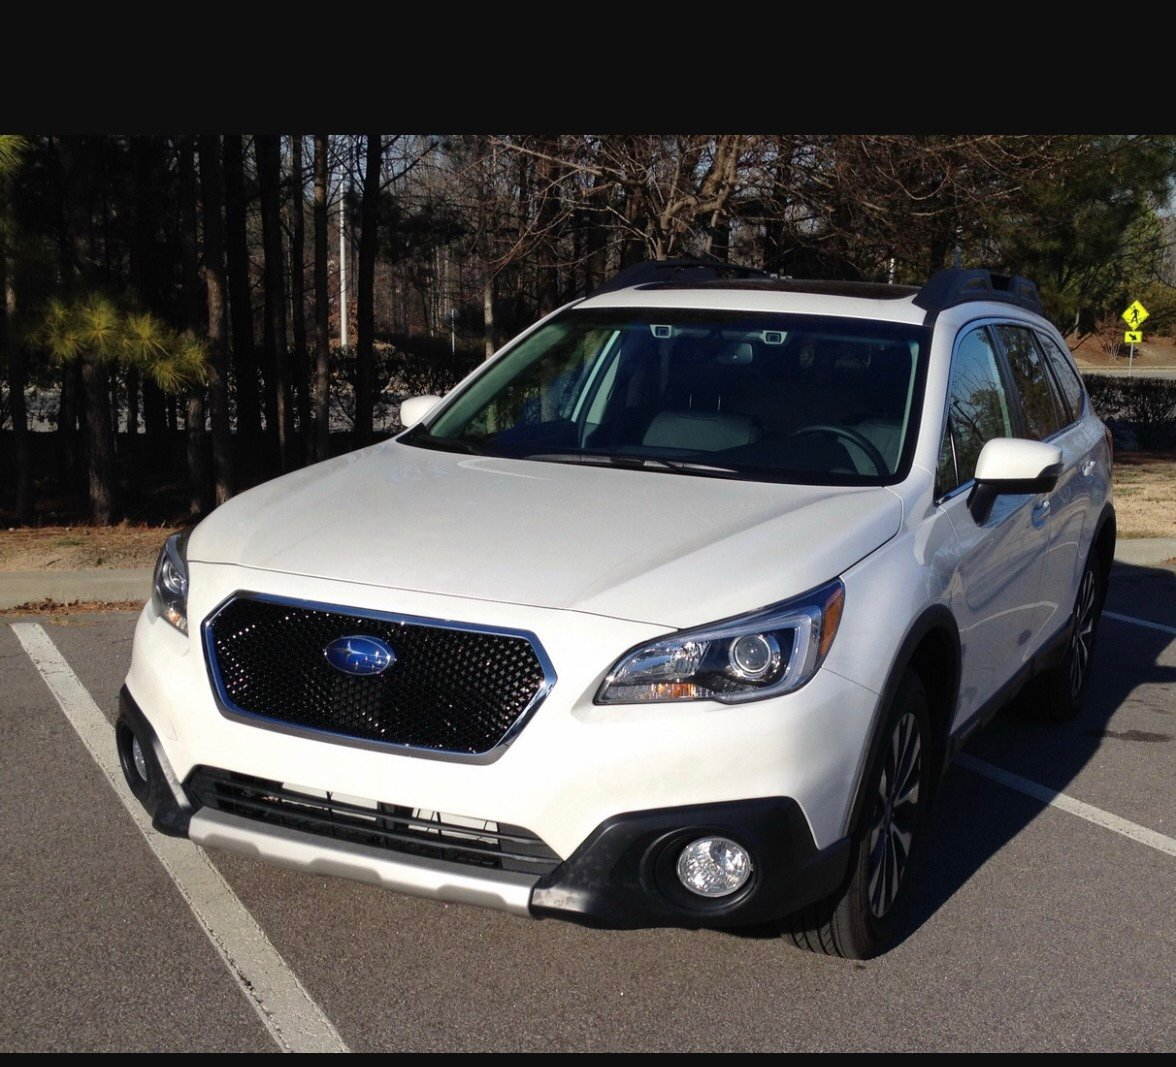 Subaru Outback Subaru Outback Forums Anyone know where